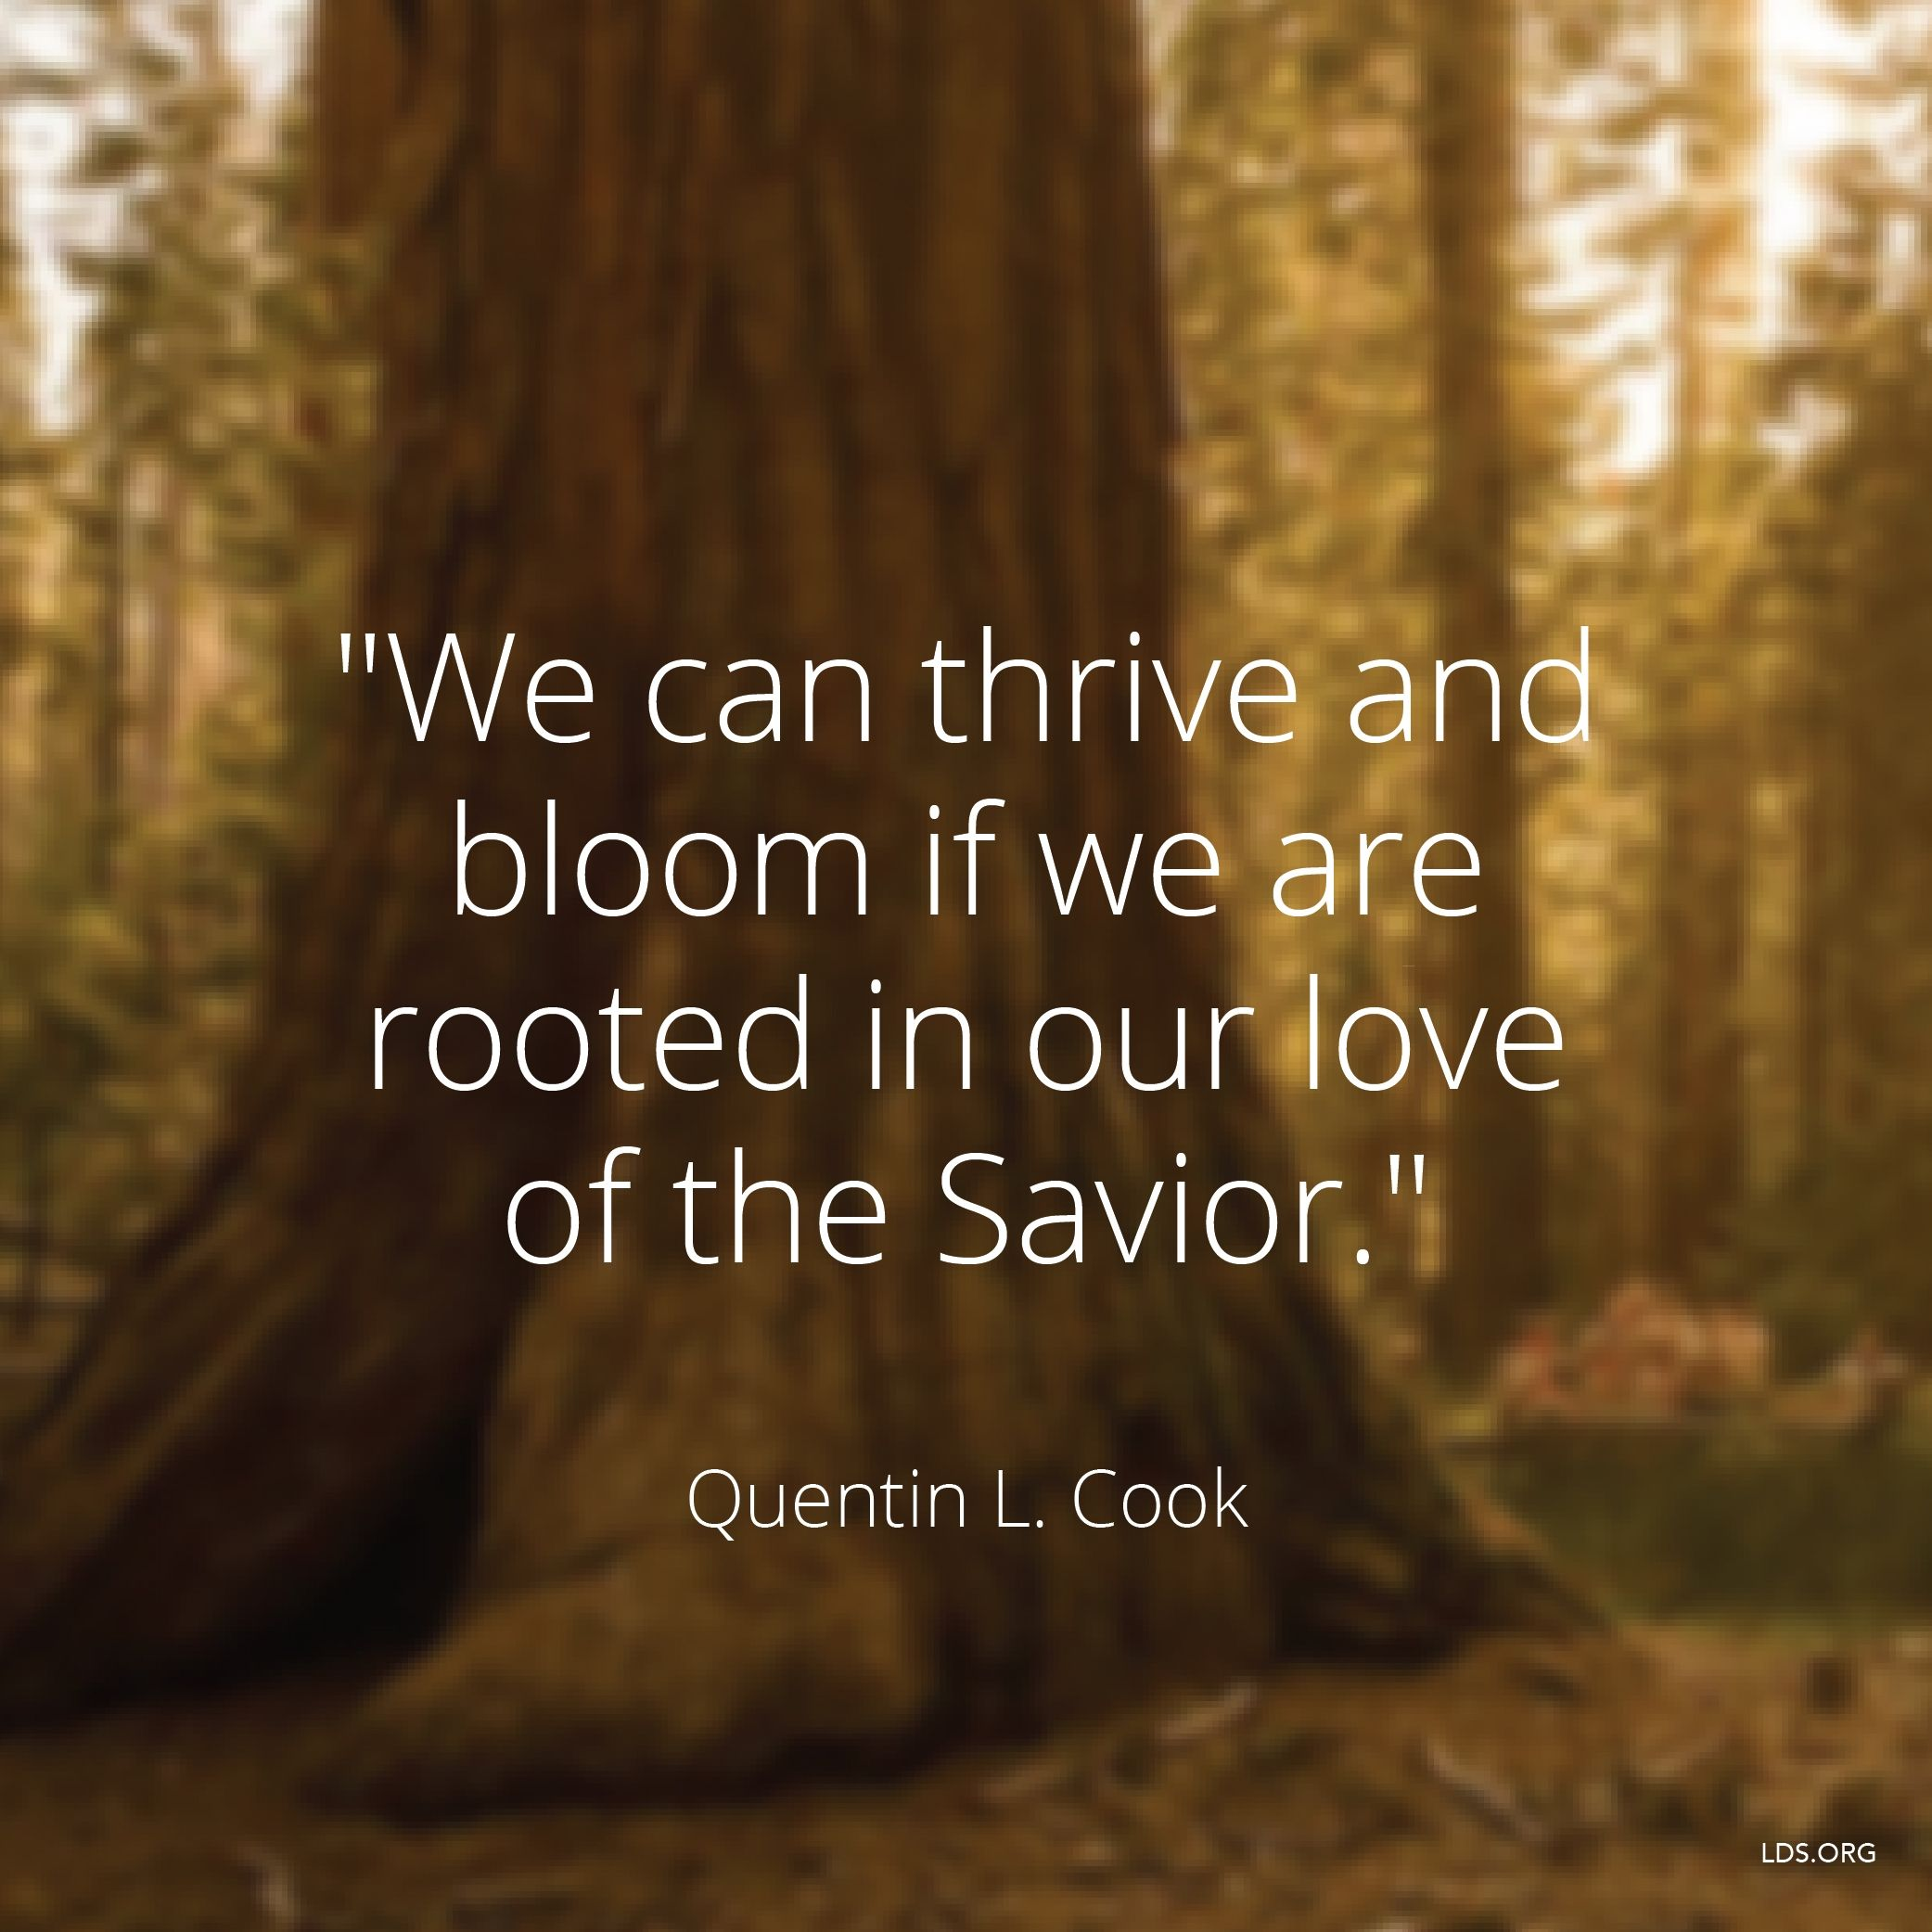 """""""We can thrive and bloom if we are rooted in our love of the Savior.""""—Elder Quentin L. Cook, """"The Lord Is My Light"""""""